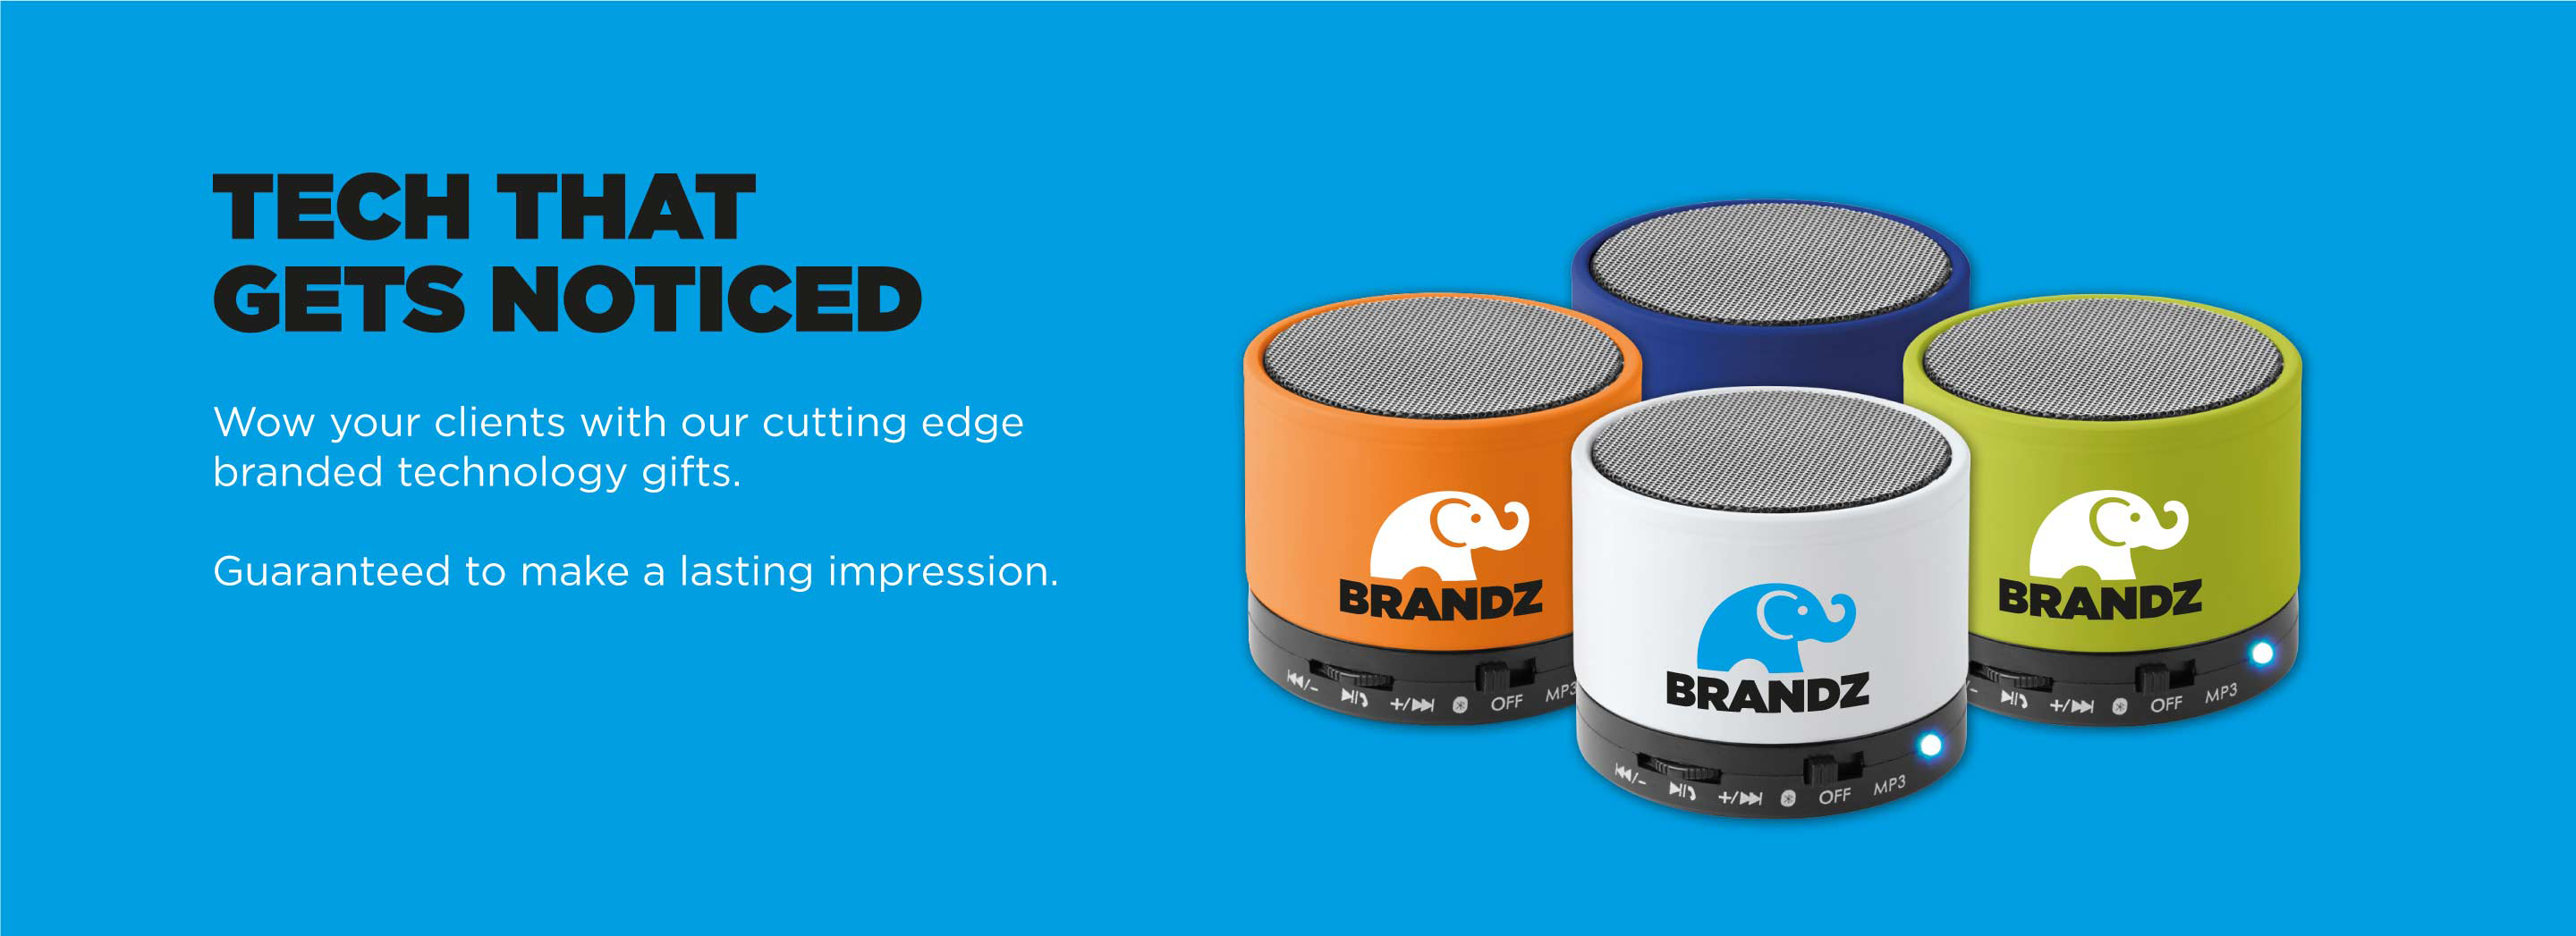 Brandz header banner tech test